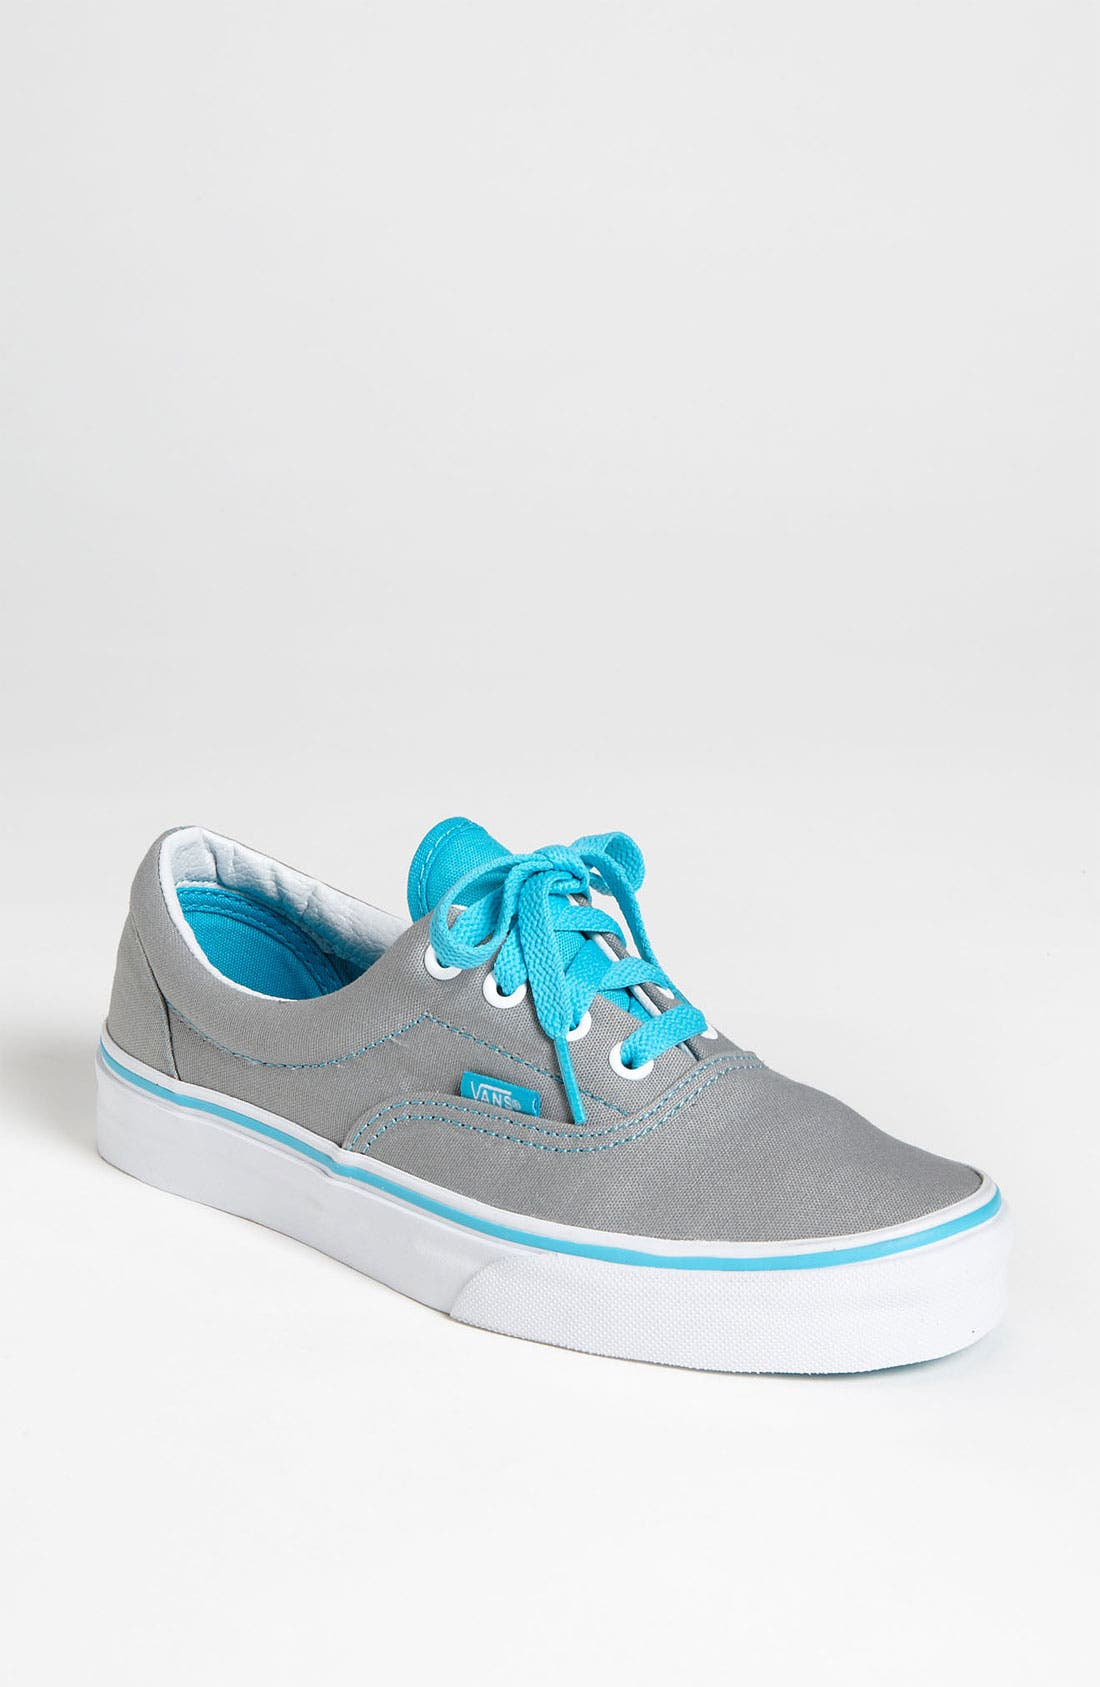 Main Image - Vans 'Era - Pop' Sneaker (Women)